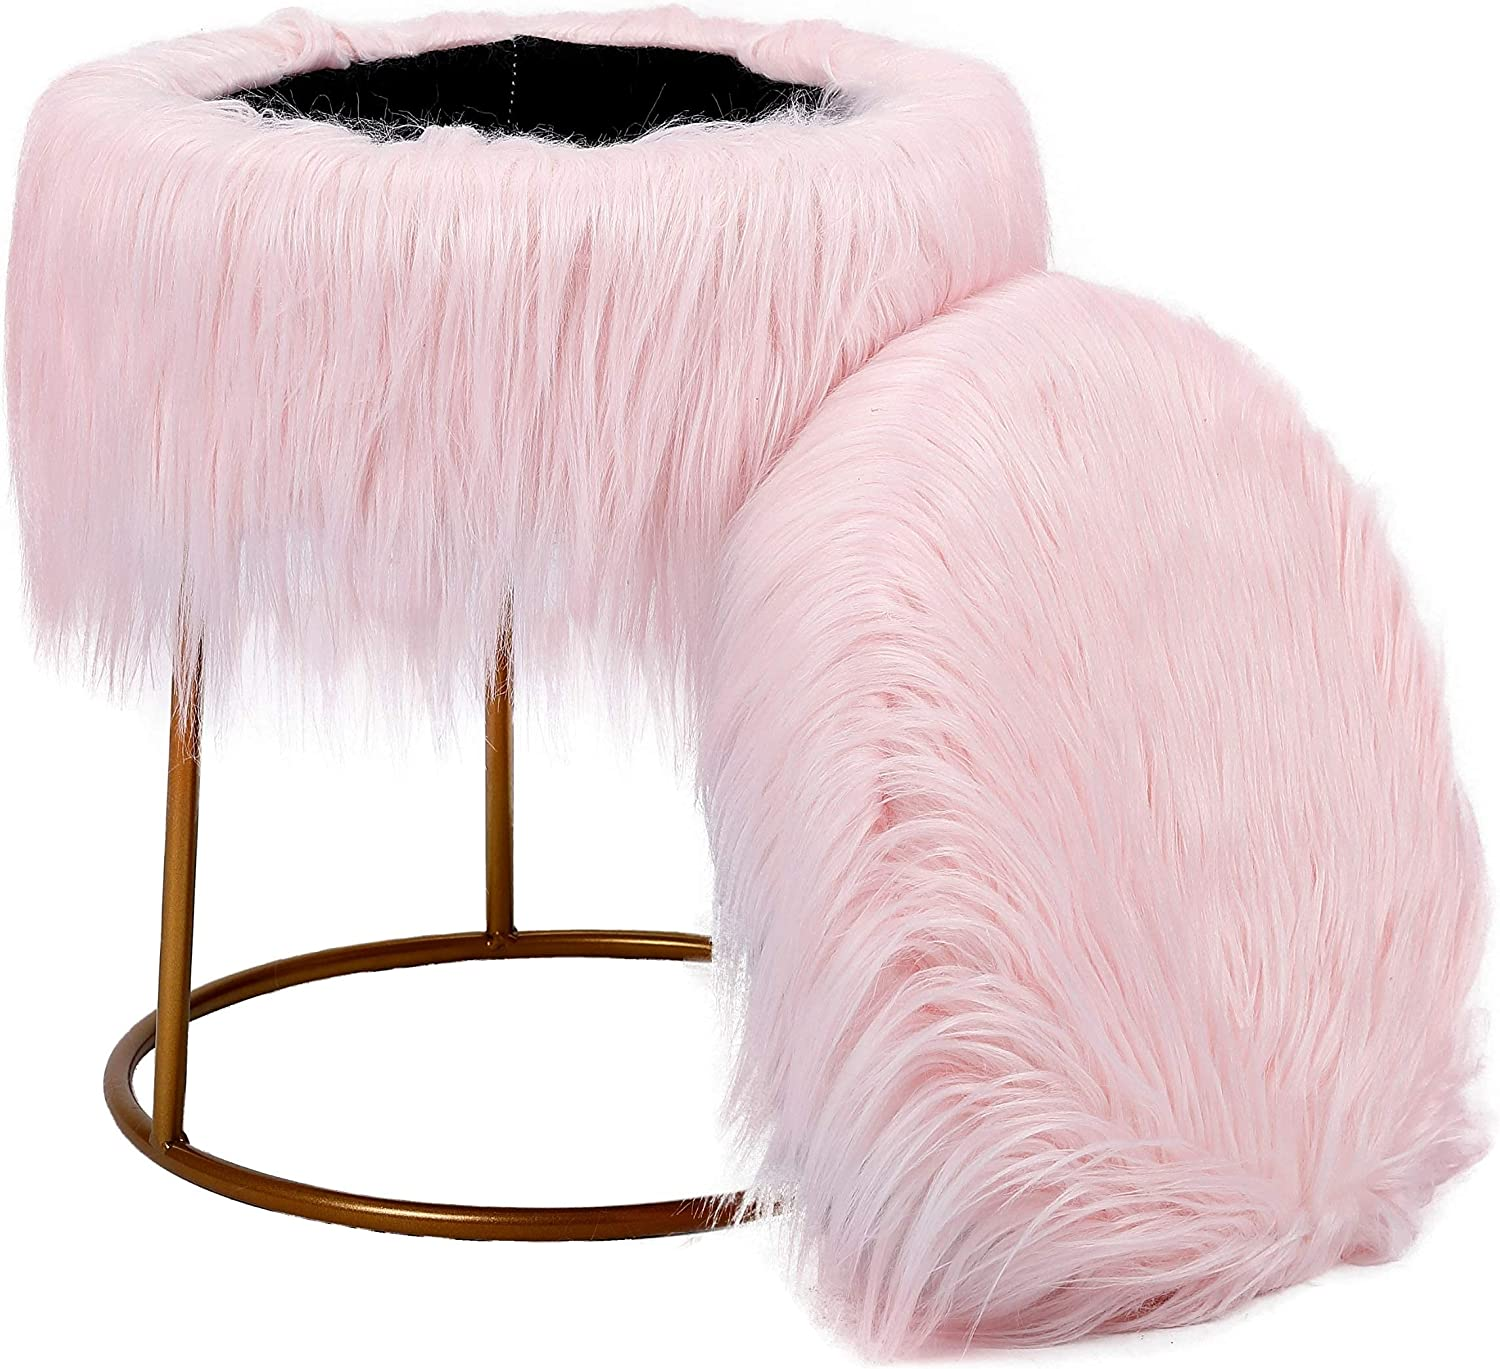 BirdRock Home Round Pink 40% OFF Cheap Sale Faux Fur Foot Max 72% OFF Ottoman Storage wit Stool